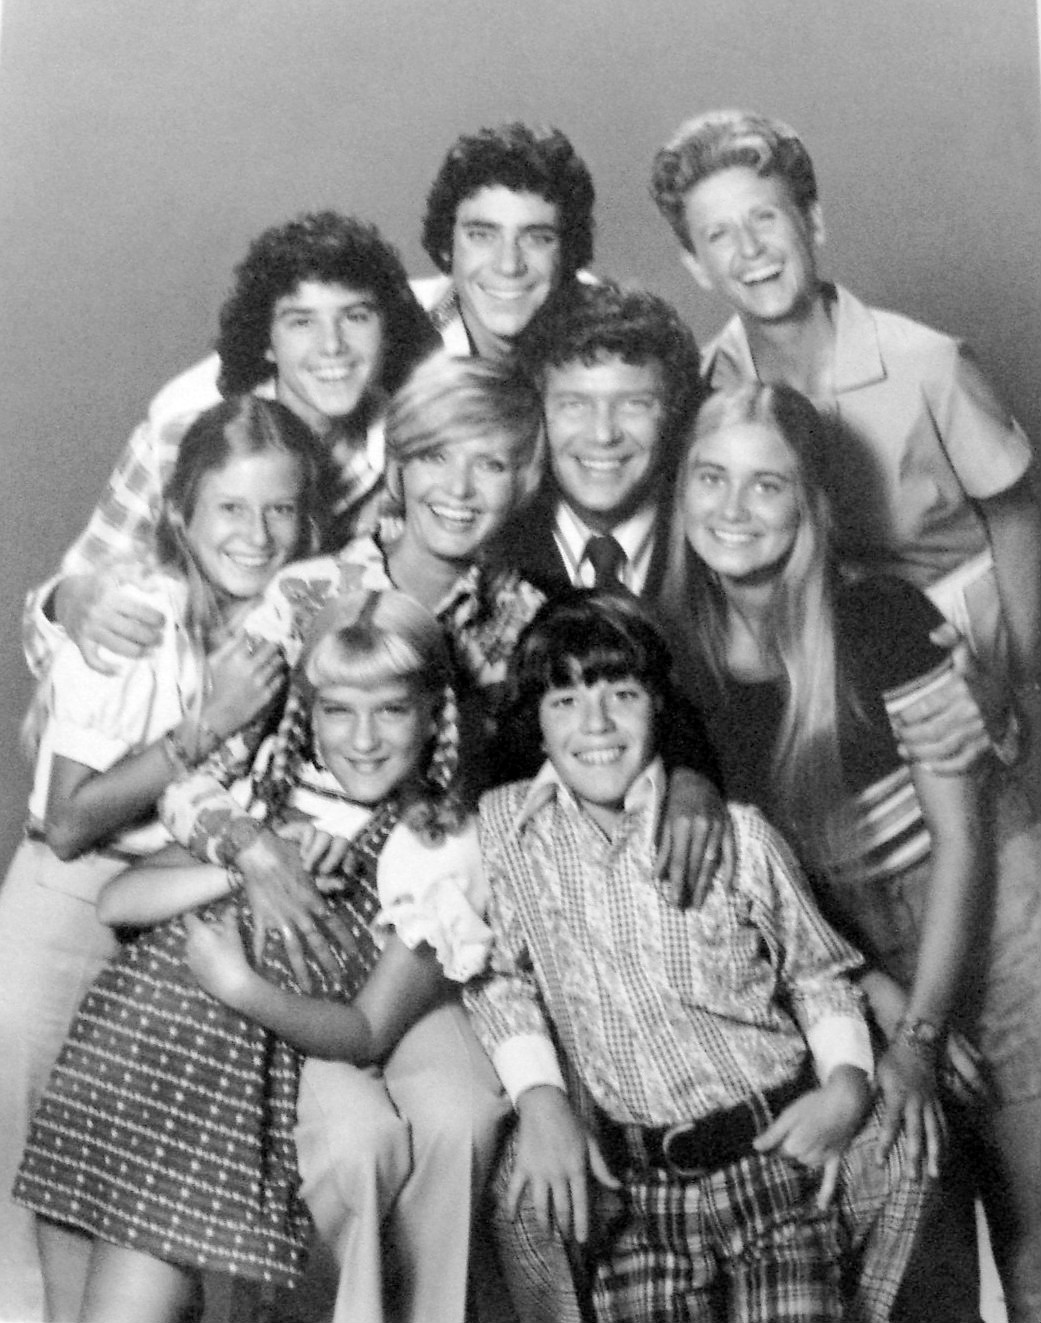 Brady_Bunch_full_cast_1973.jpg